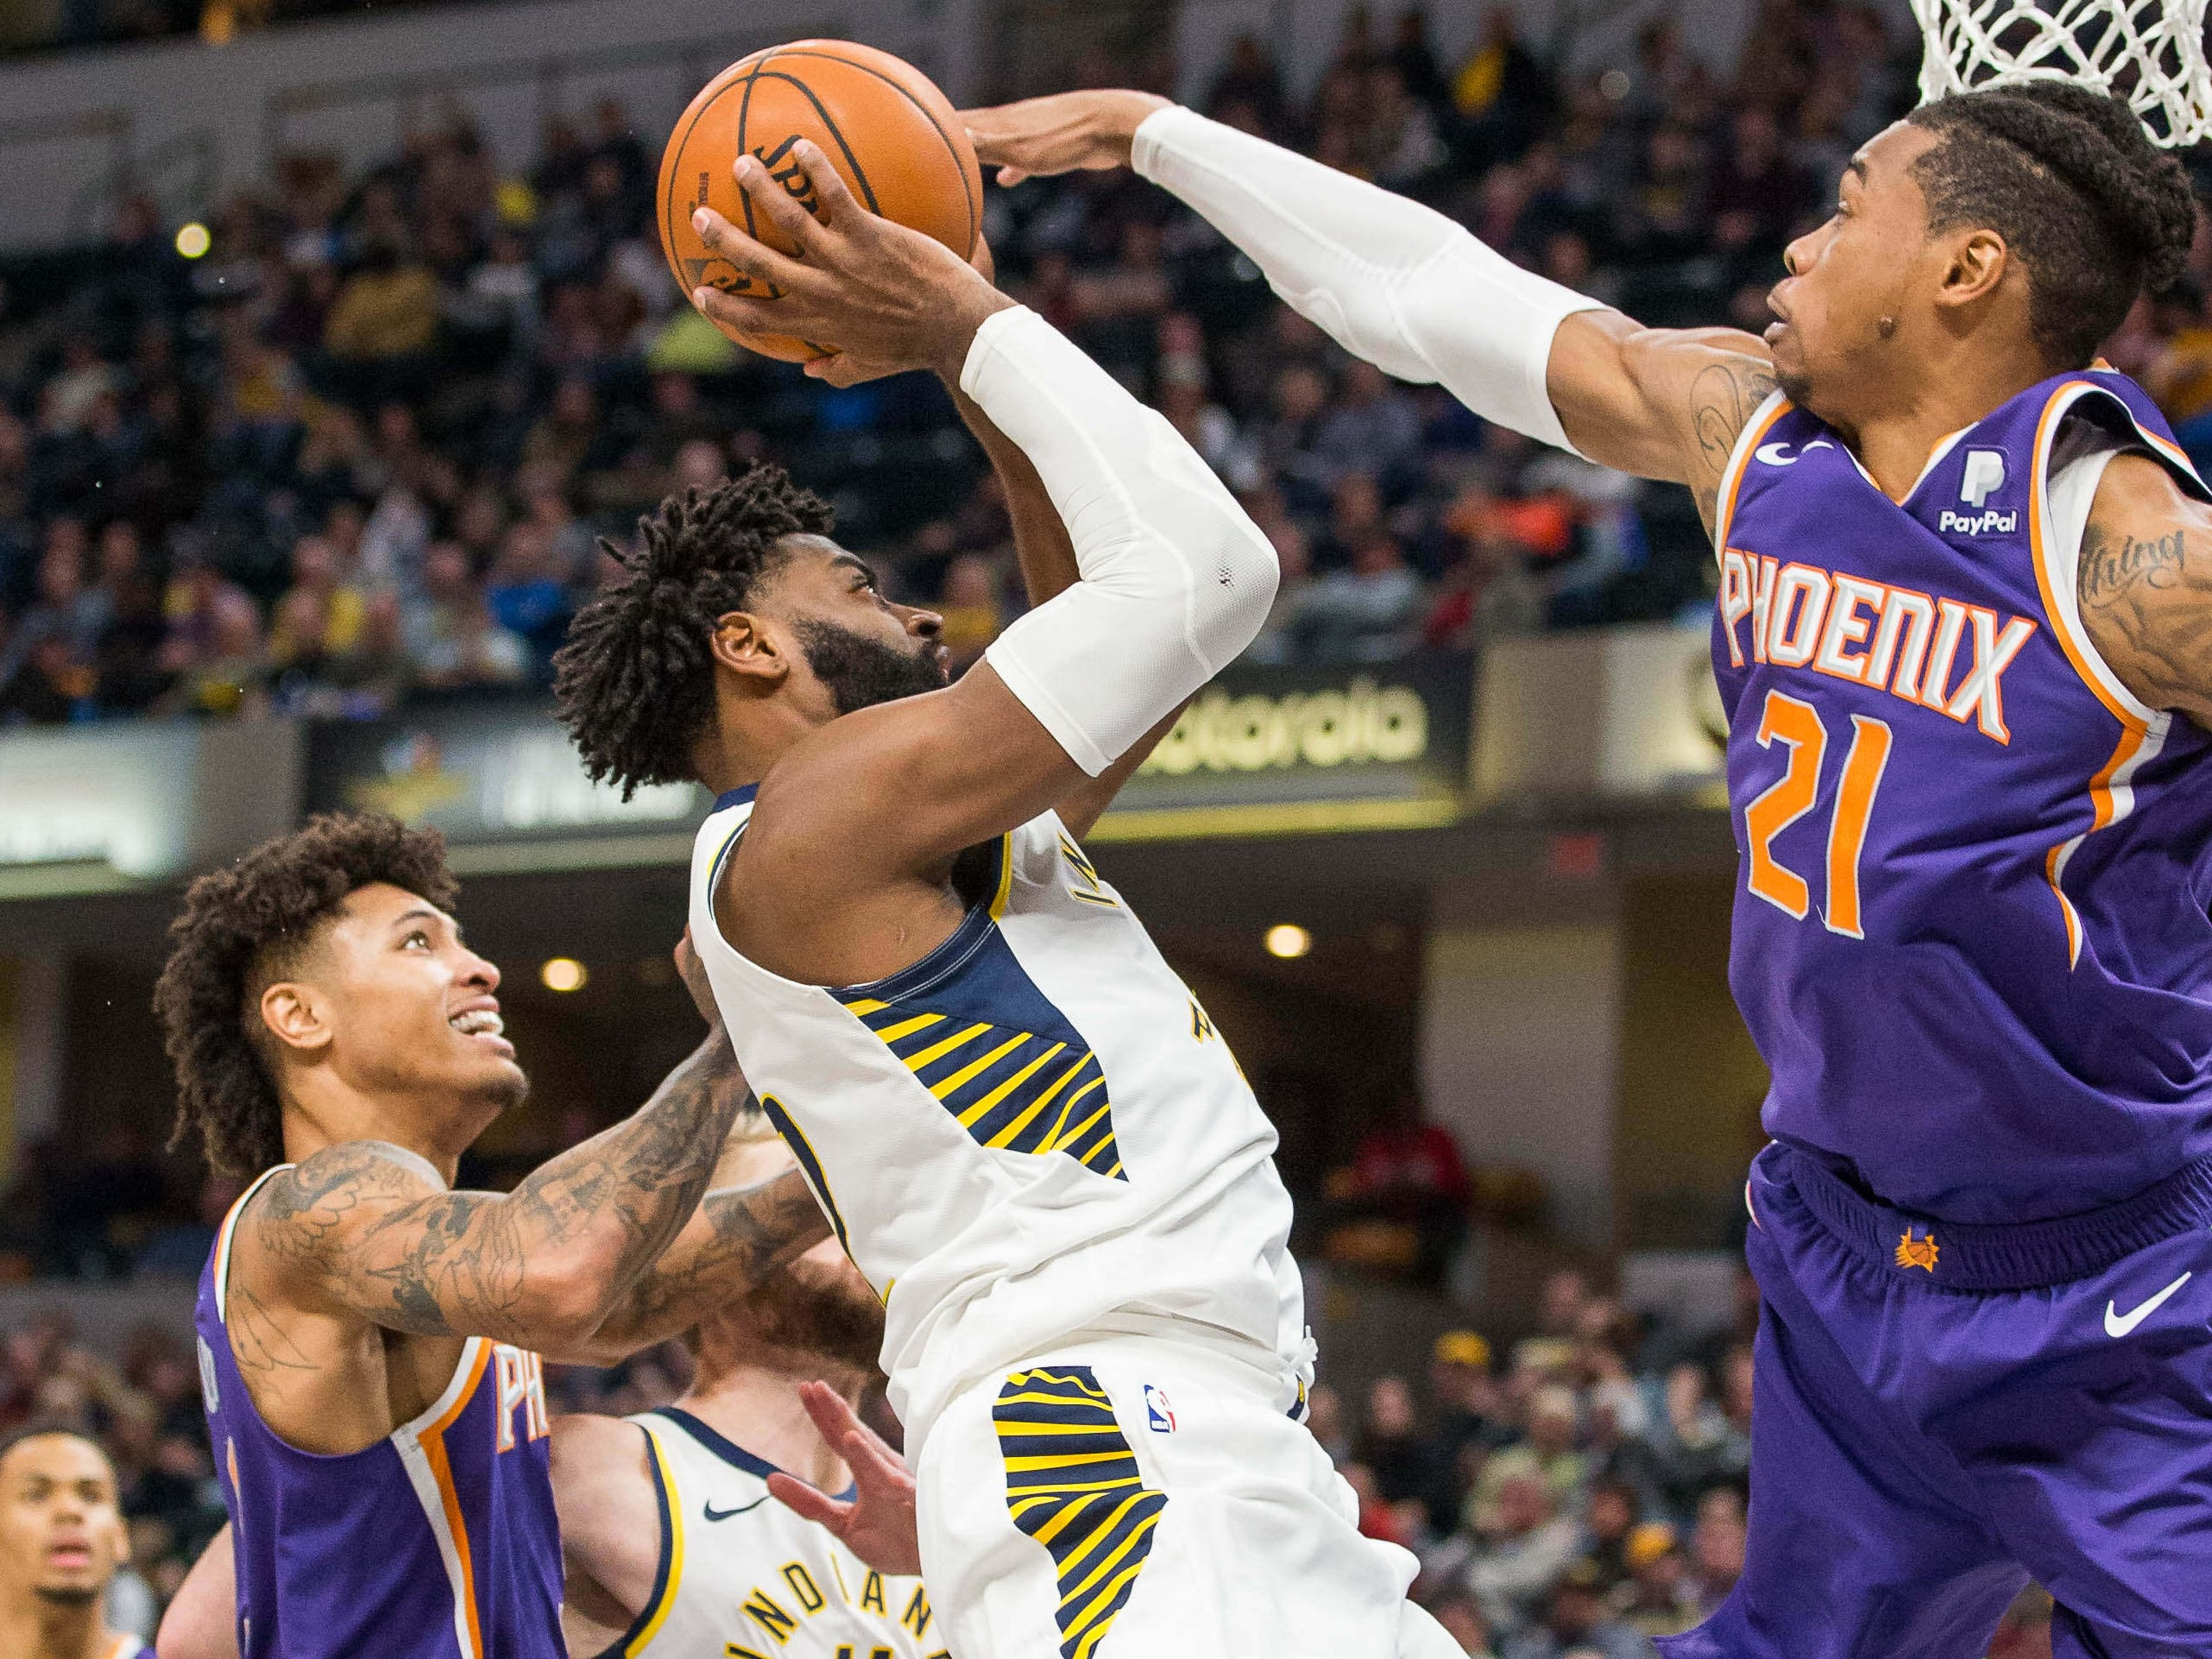 Jan. 15: Pacers guard Tyreke Evans (12) tries to shoot over Suns defender Richaun Holmes (21) during the second half at Bankers Life Fieldhouse in Indianapolis.